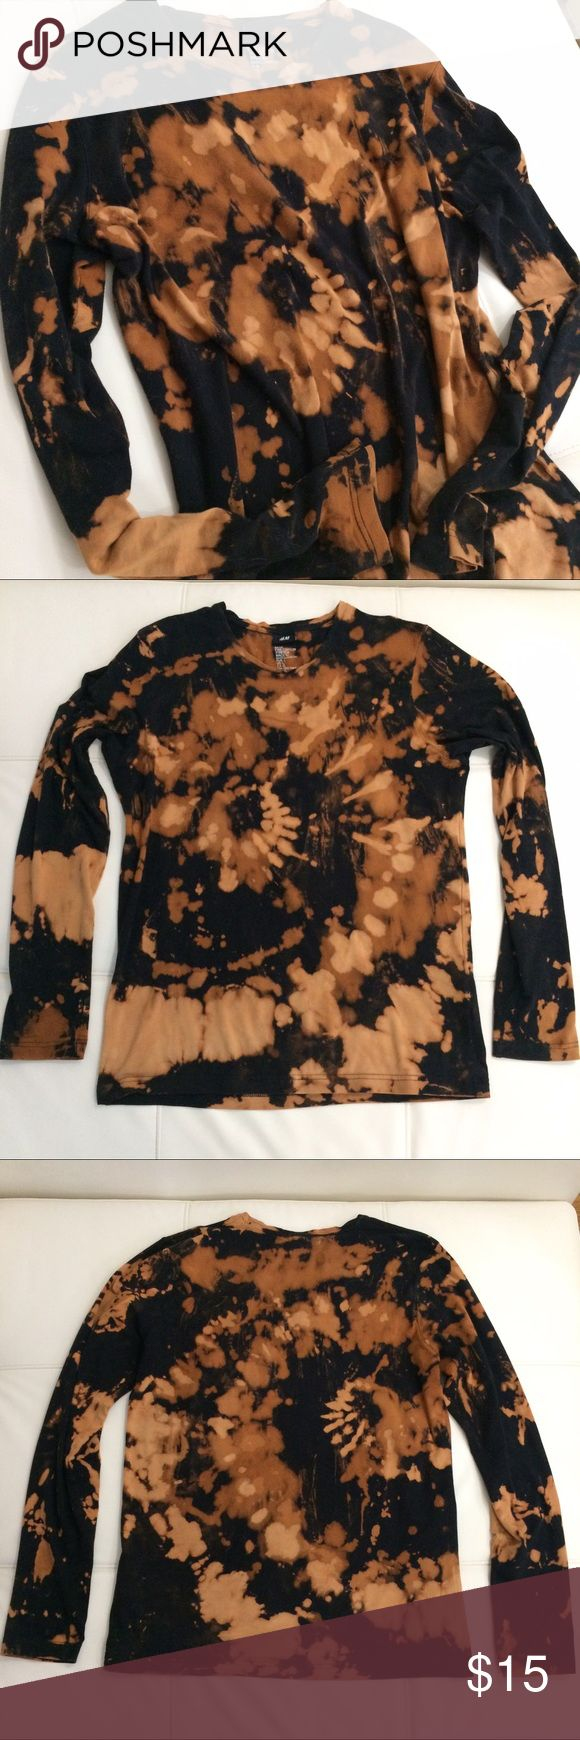 New Listing  H&M bleached long sleeve Black long sleeve tee. Bleach pattern design- bough like this from H&M. Size L. Looks awesome oversized with leggings or skinny jeans. H&M Tops